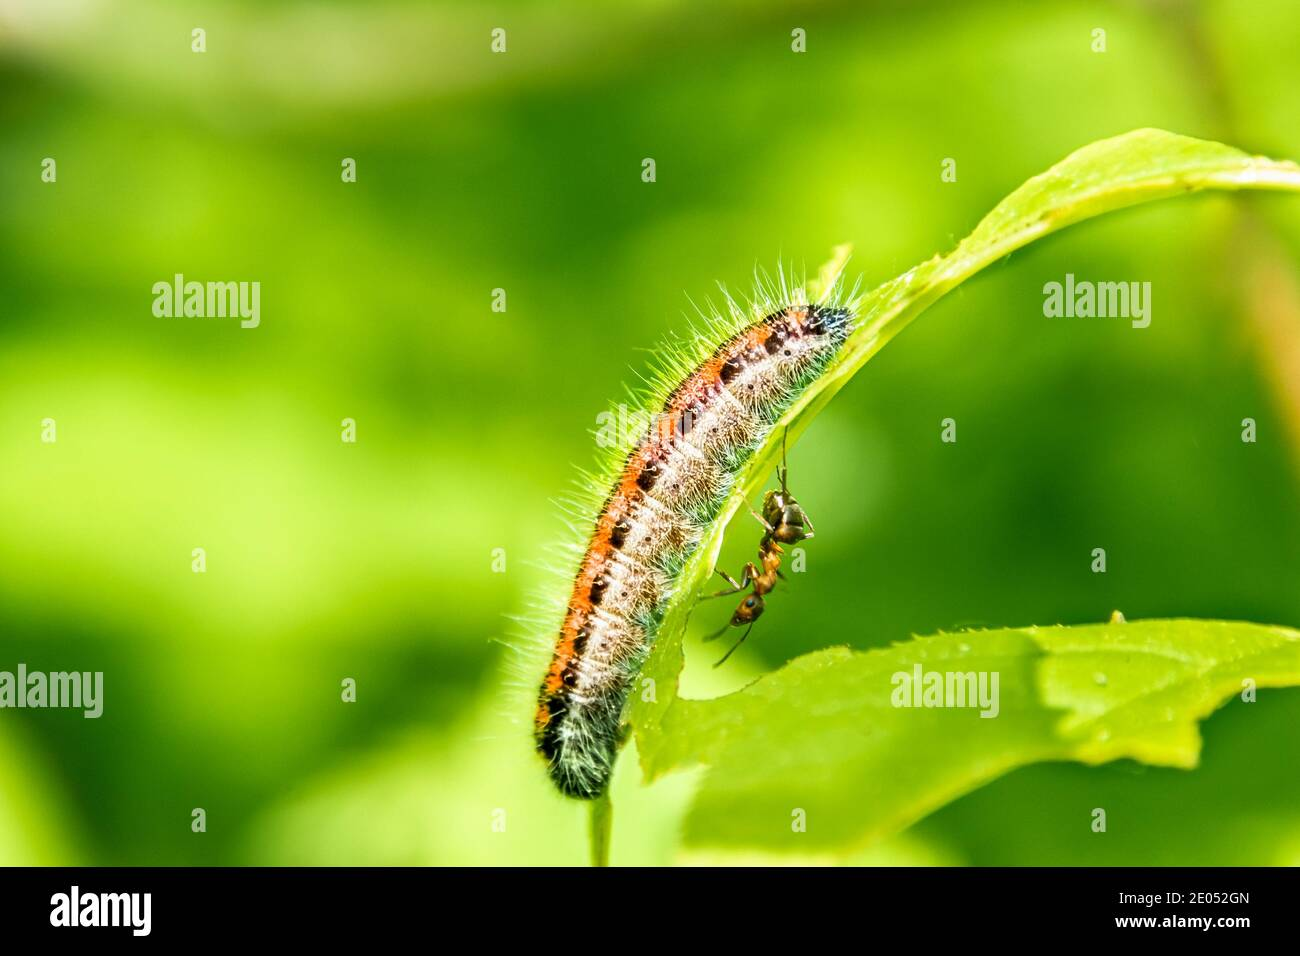 An orange haired caterpillar sits on a leaf on the other side an ant is walking, selective focus Stock Photo